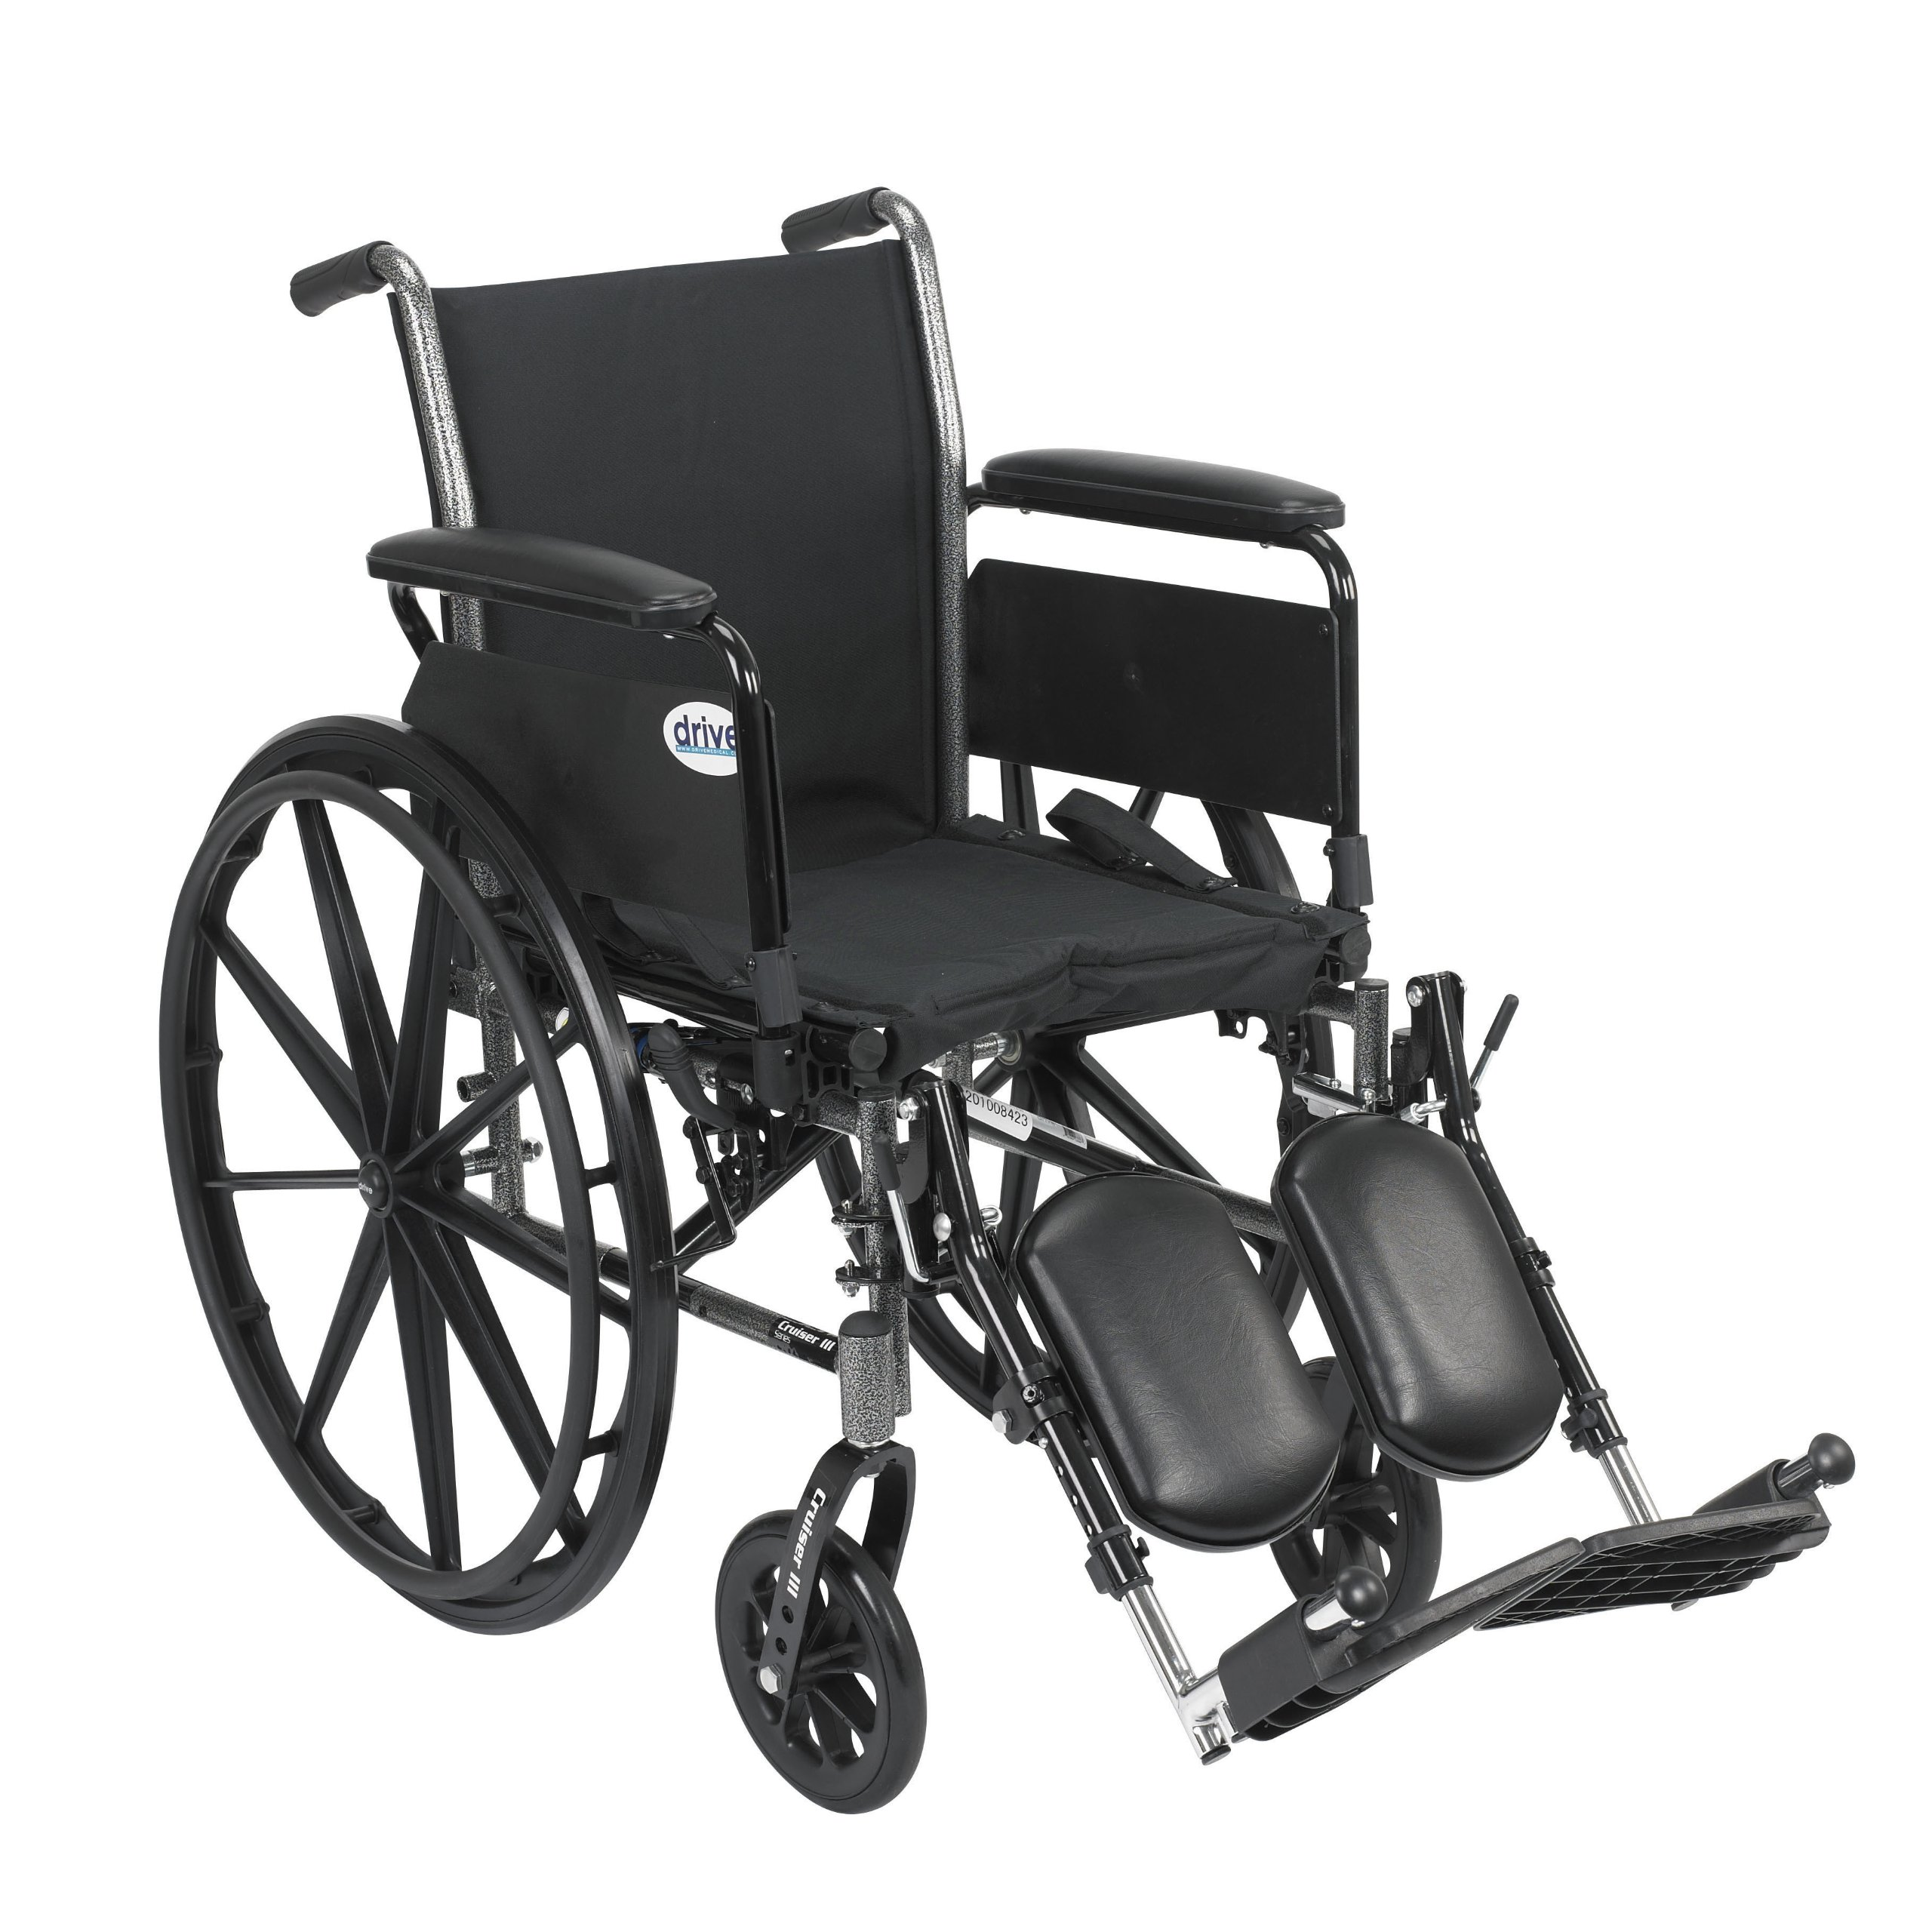 Drive Medical Cruiser III Light Weight Wheelchair with Various Flip Back Arm Styles and Front Rigging Options, Flip Back Removable Full Arms/Elevating Leg Rests, Black, 20 Inch by Drive Medical